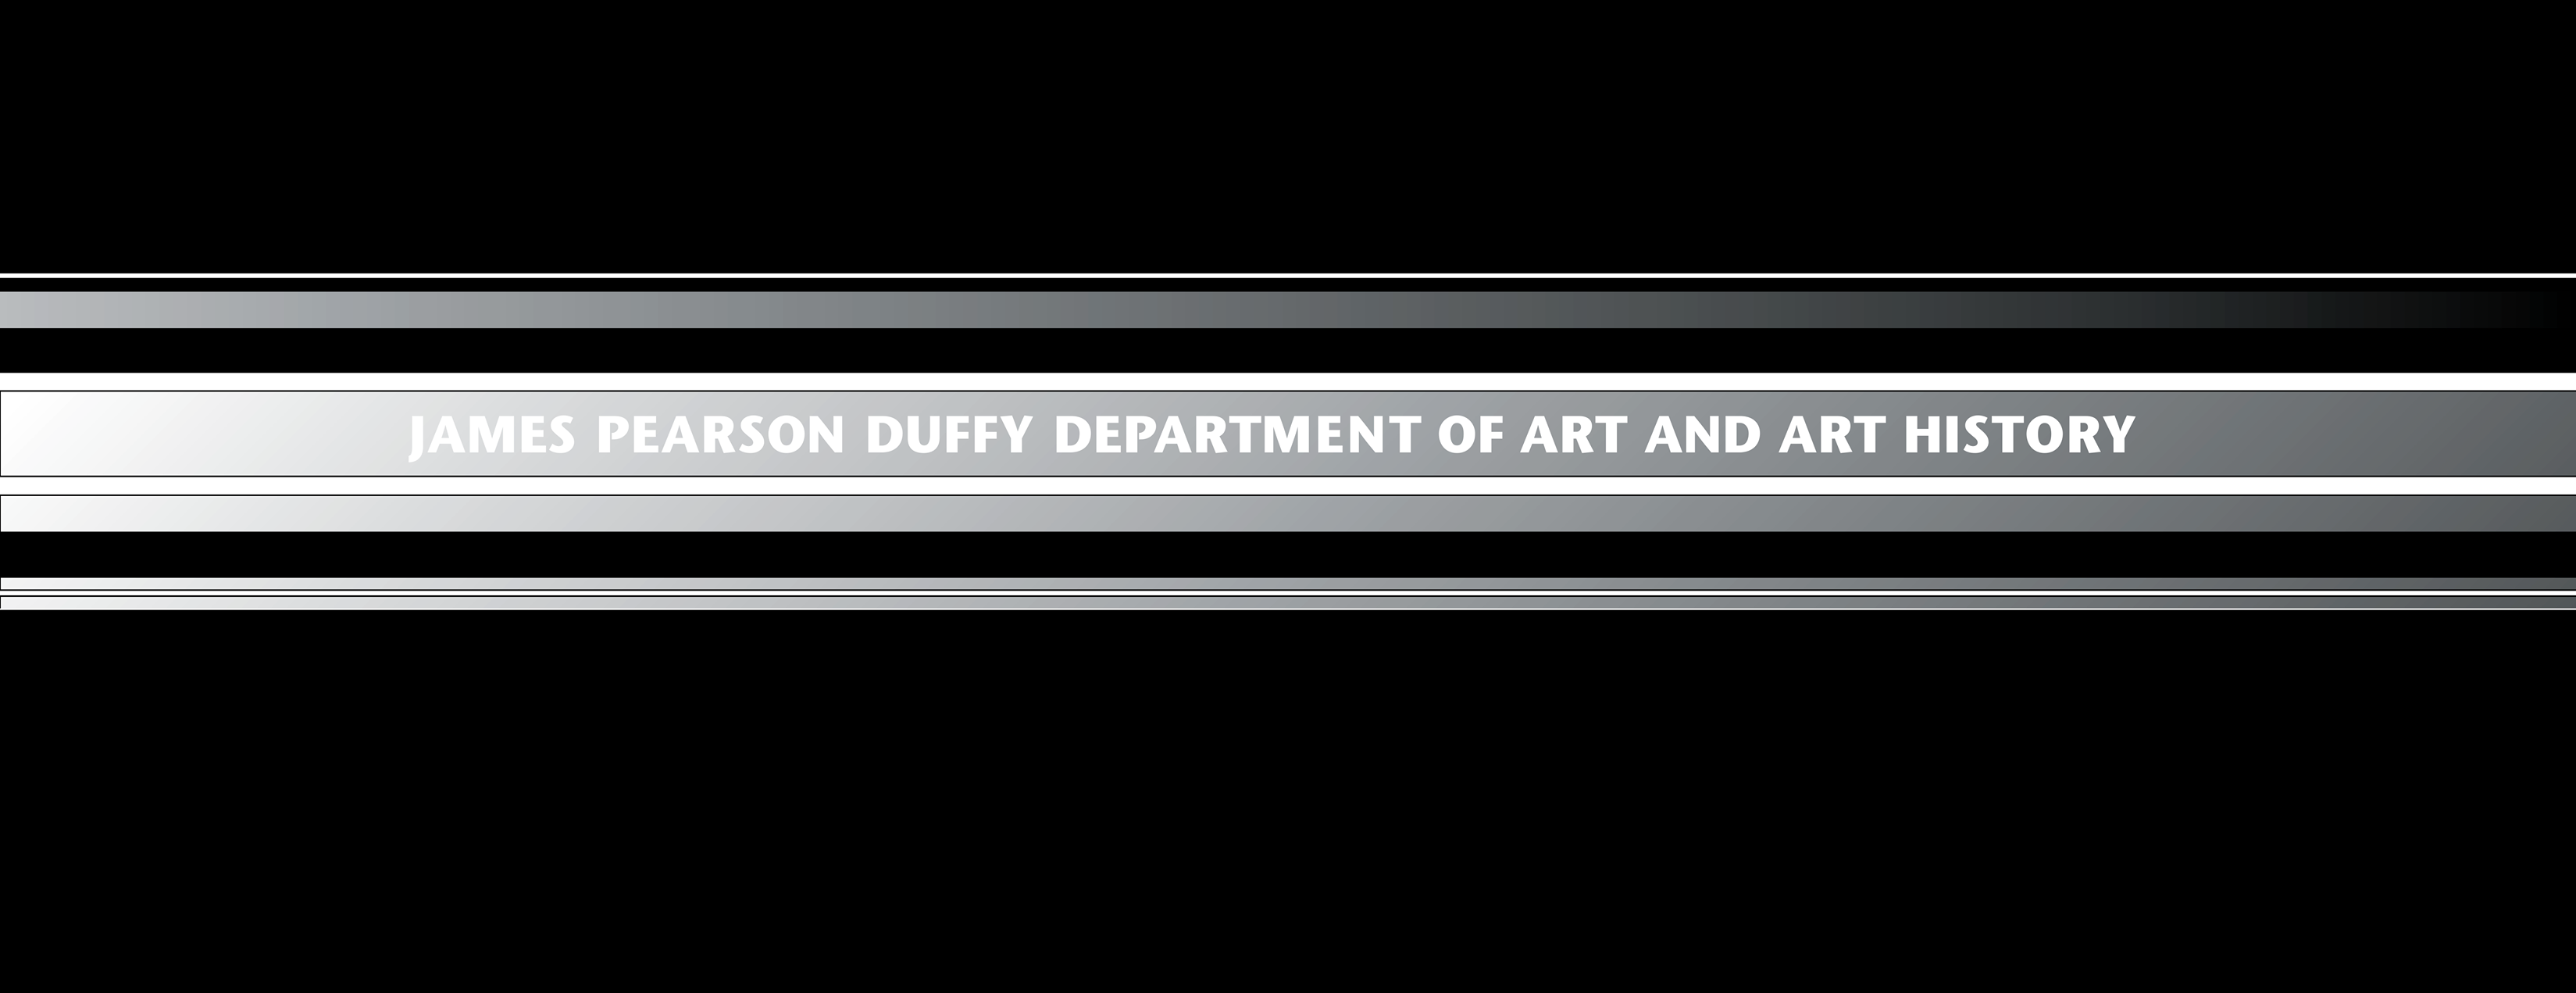 College Wayne State University: James Pearson Duffy Department of Art and Art History